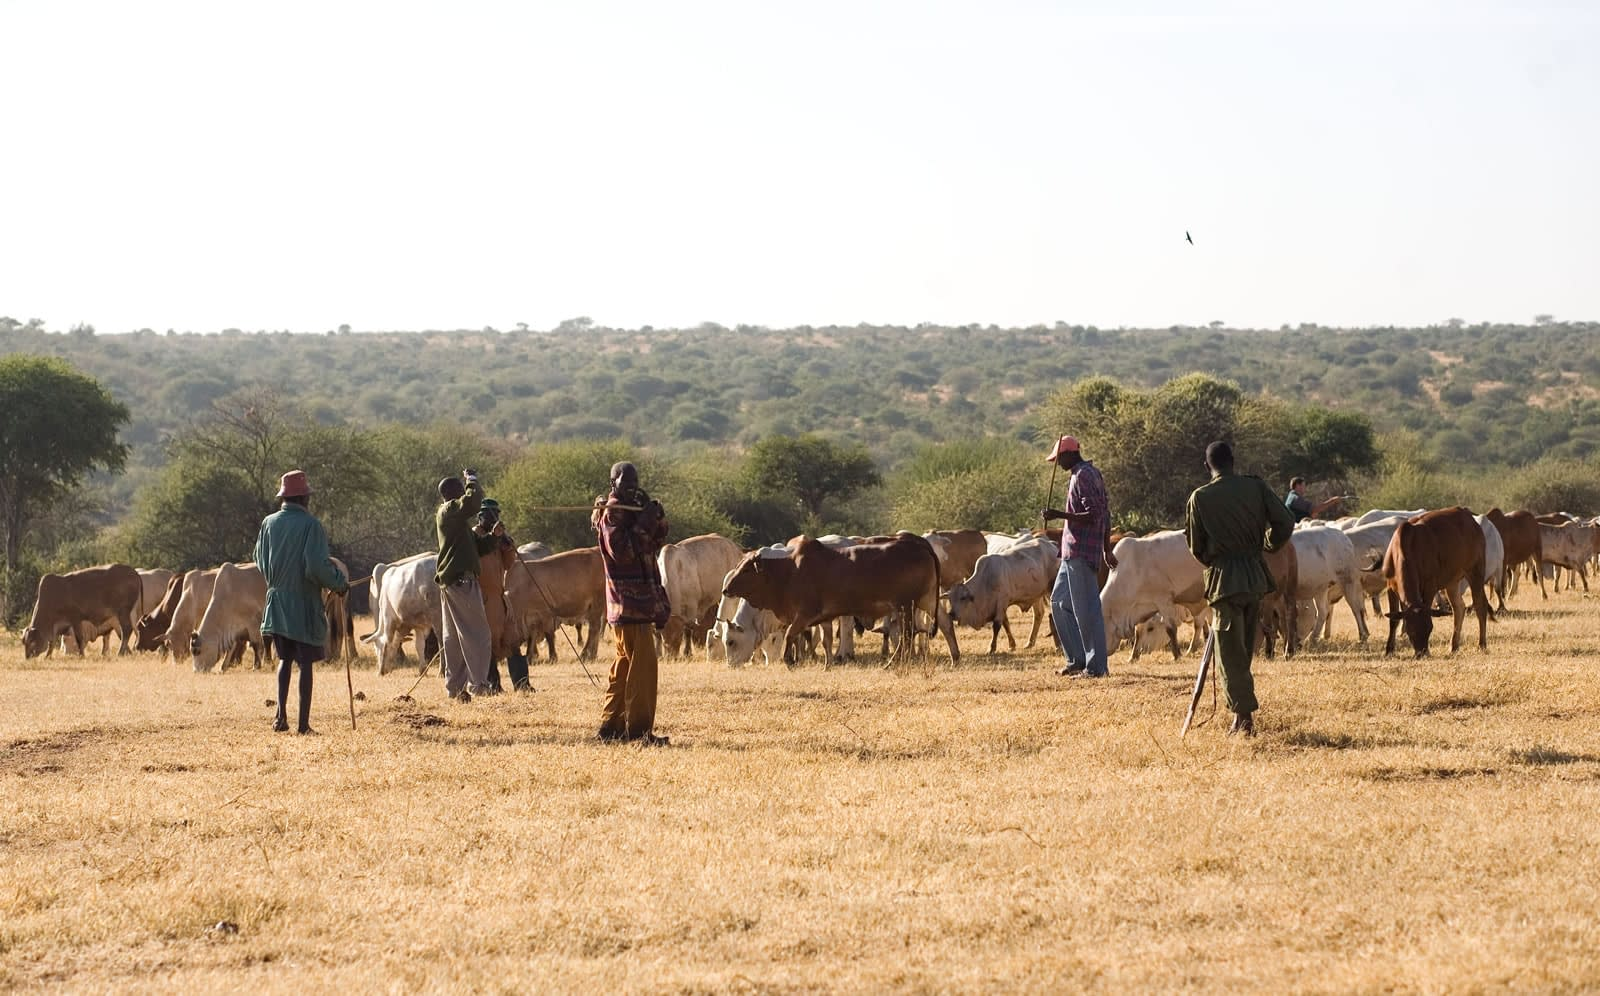 cattle grazing and being watched by the team